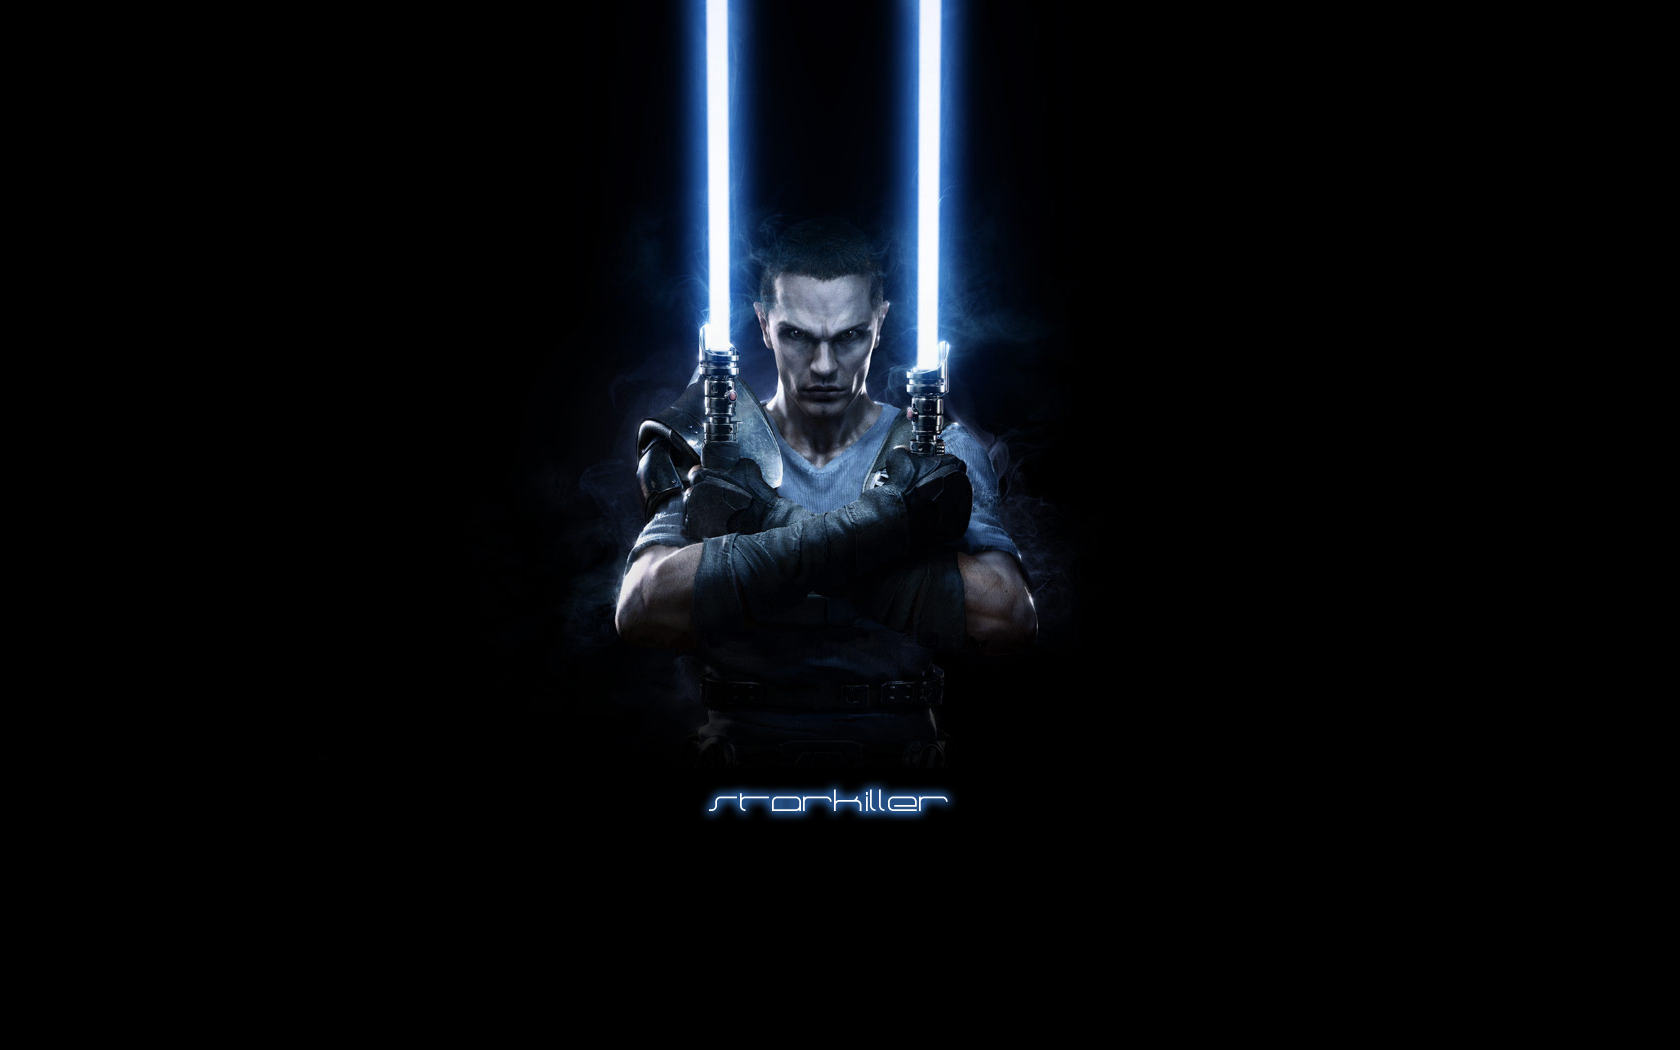 48+] Awesome Star Wars Wallpapers on